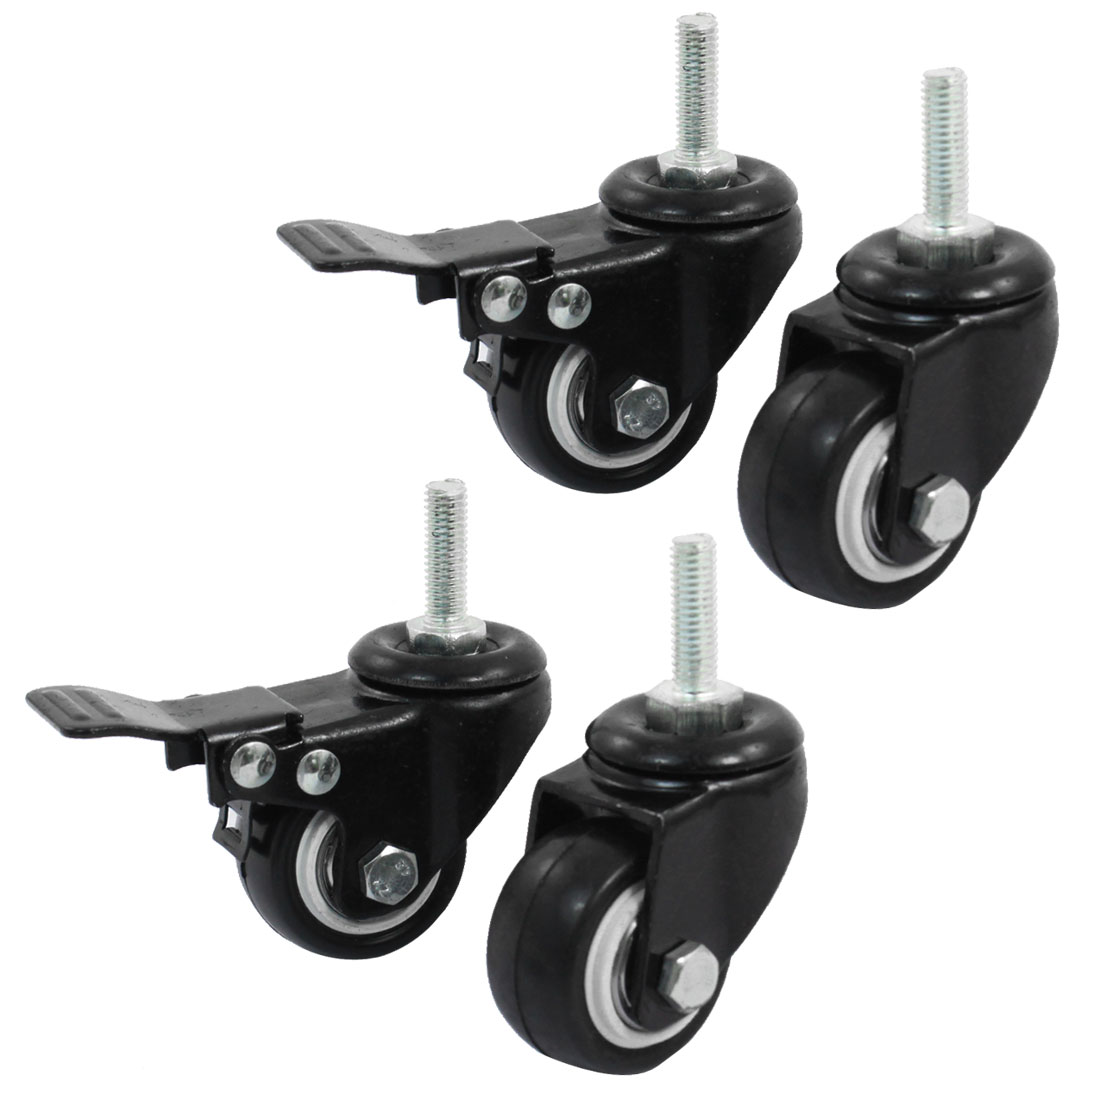 "8mm Thread 1.5"" Wheel Rotatable Shopping Trolley Brake Swivel Caster Black 4pcs"